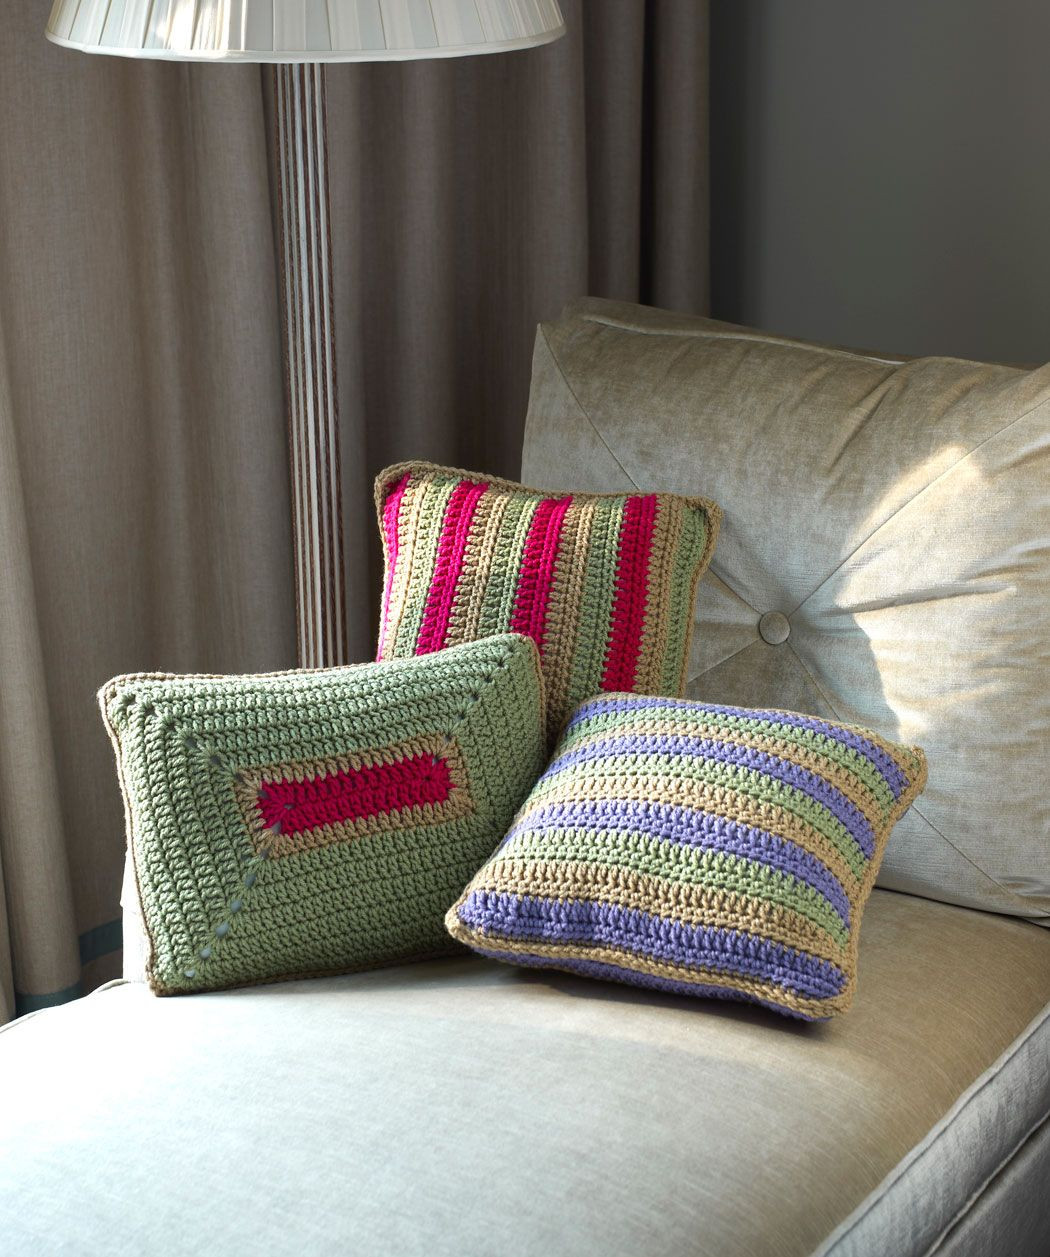 Inspirational Colorful Throw Pillows Free Crochet Pattern From Red Heart Crochet Throw Pillow Of Contemporary 41 Pics Crochet Throw Pillow